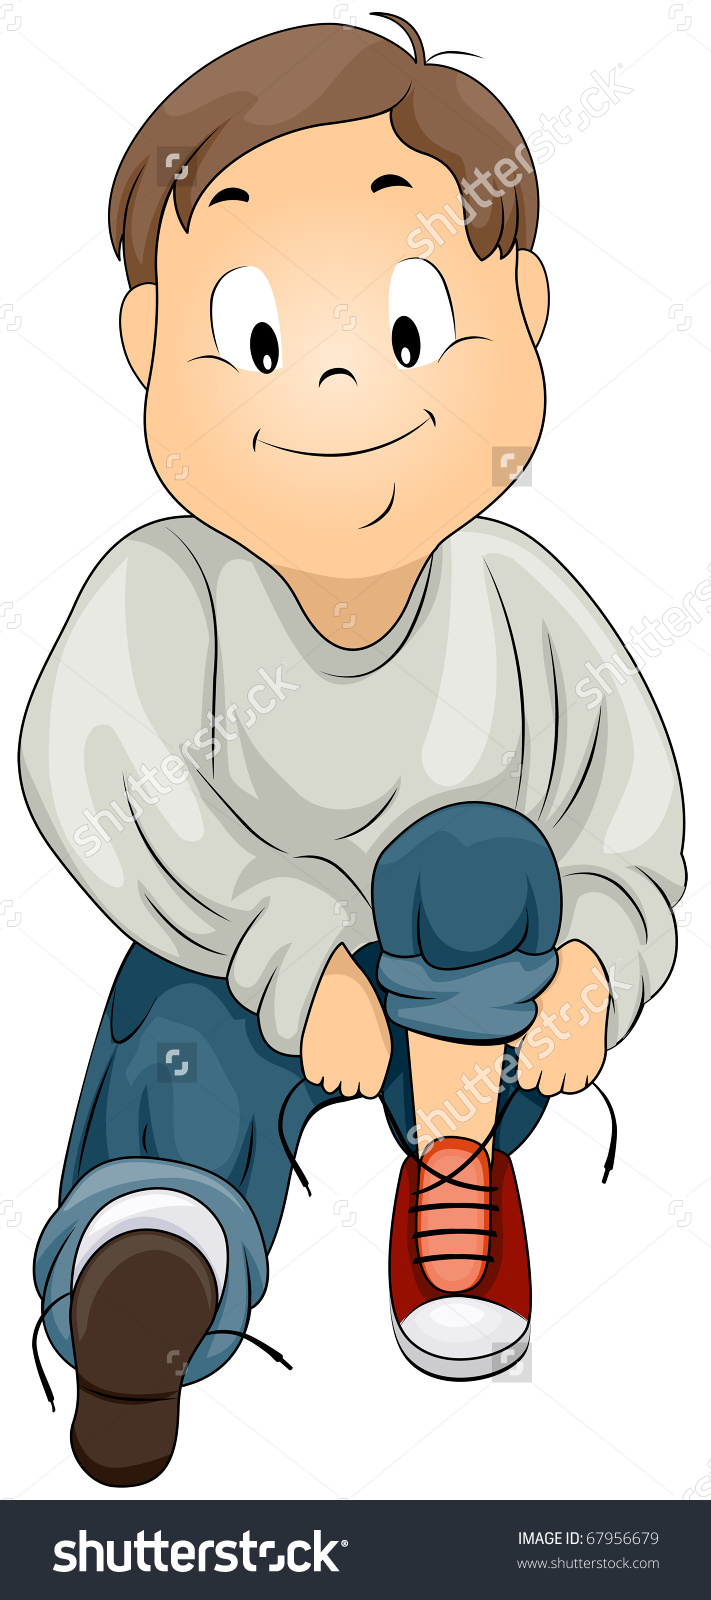 Tying Shoelaces Clipart.